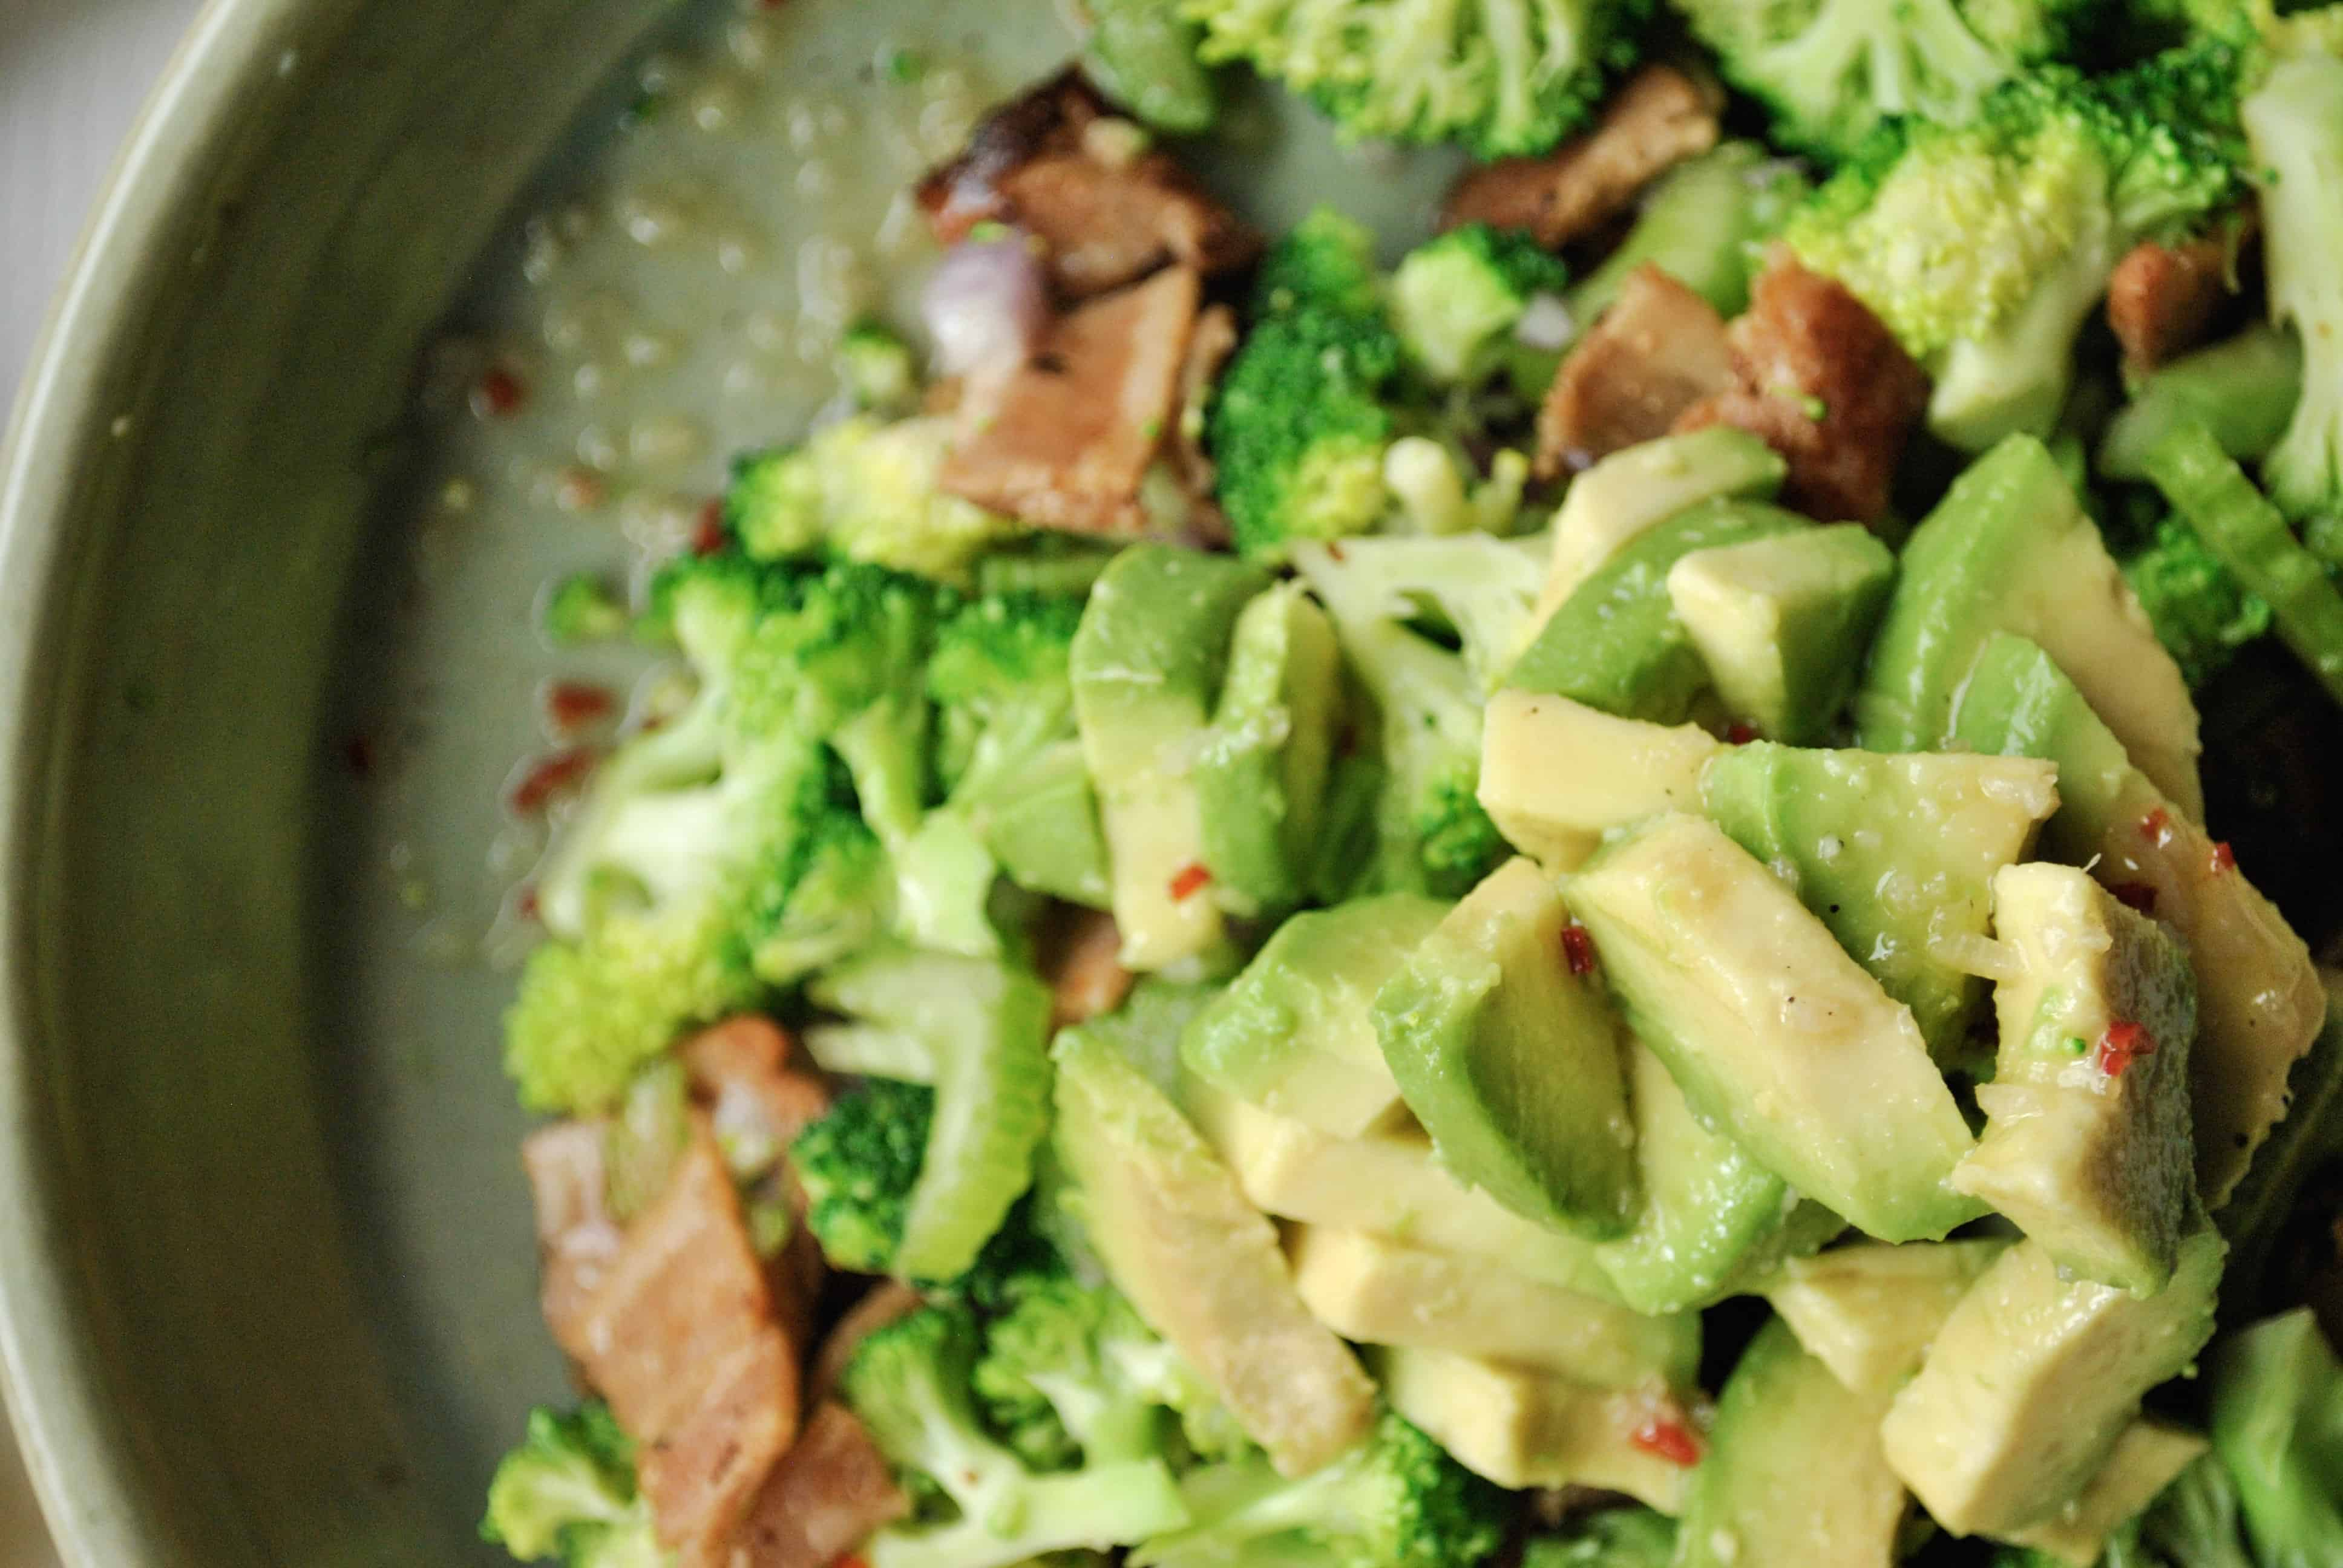 Bacon and Broccoli Salad with Avocado